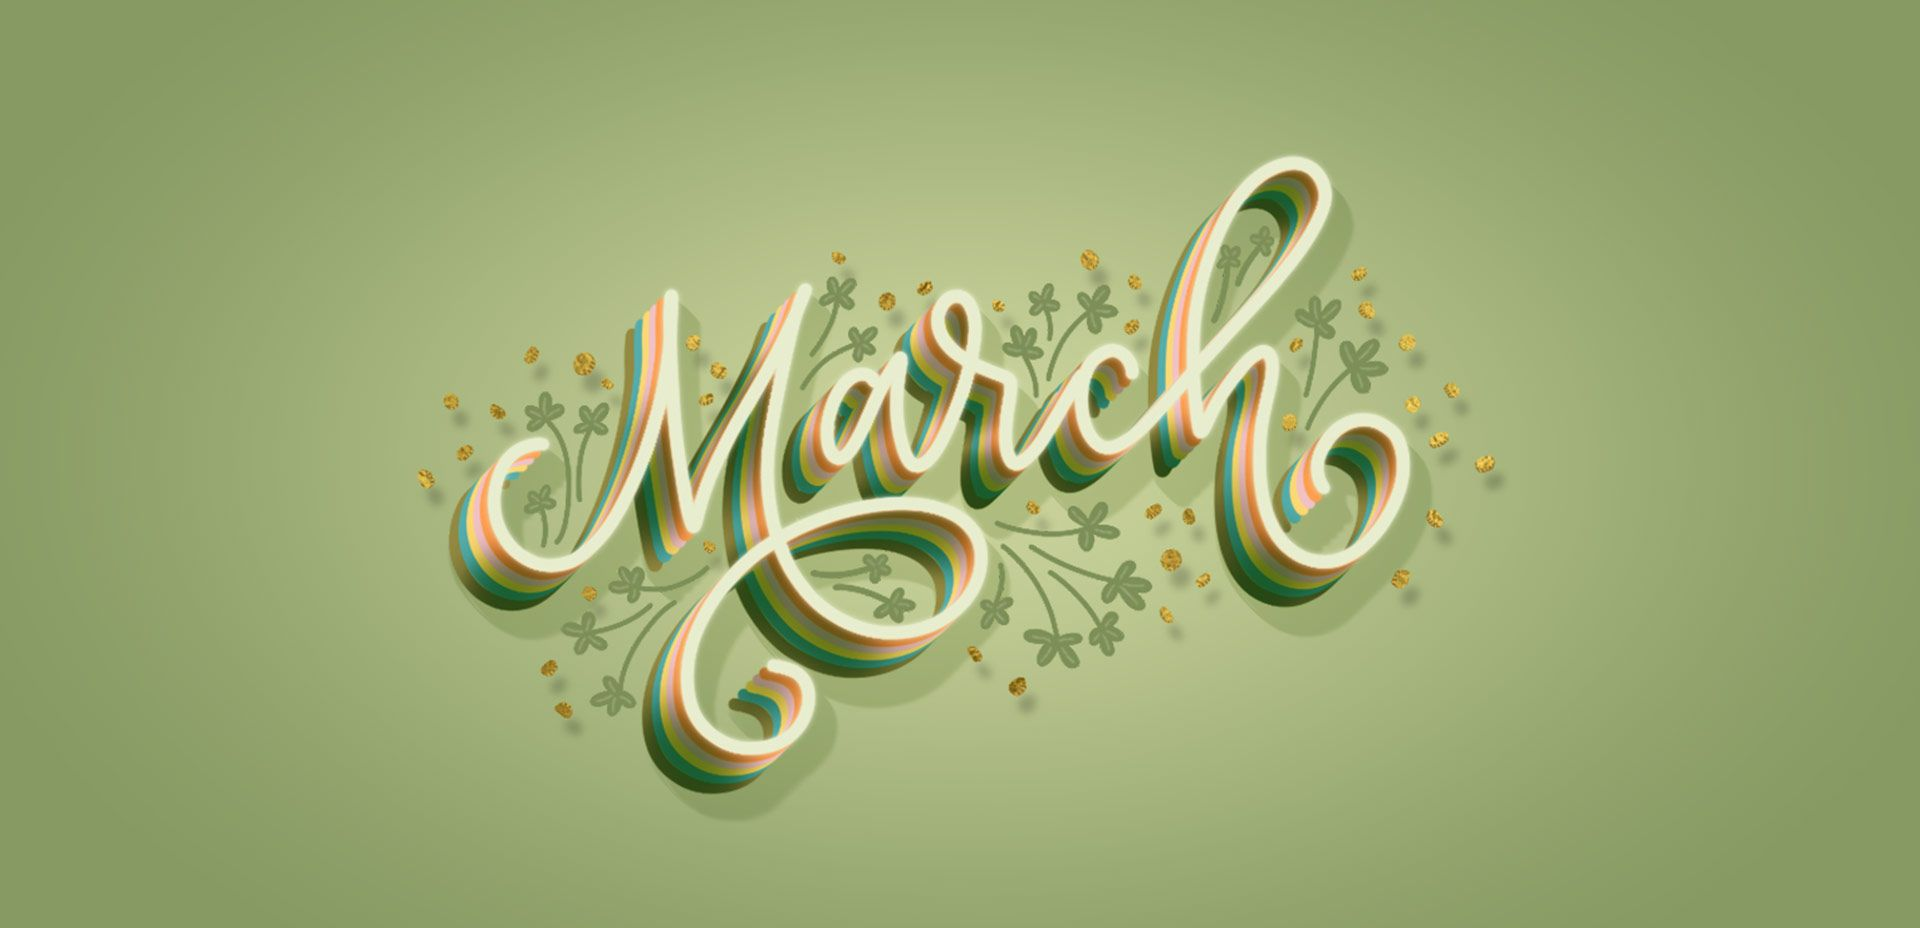 1920x928 Freebie: March 2019 Desktop Wallpapers - Every-Tuesday